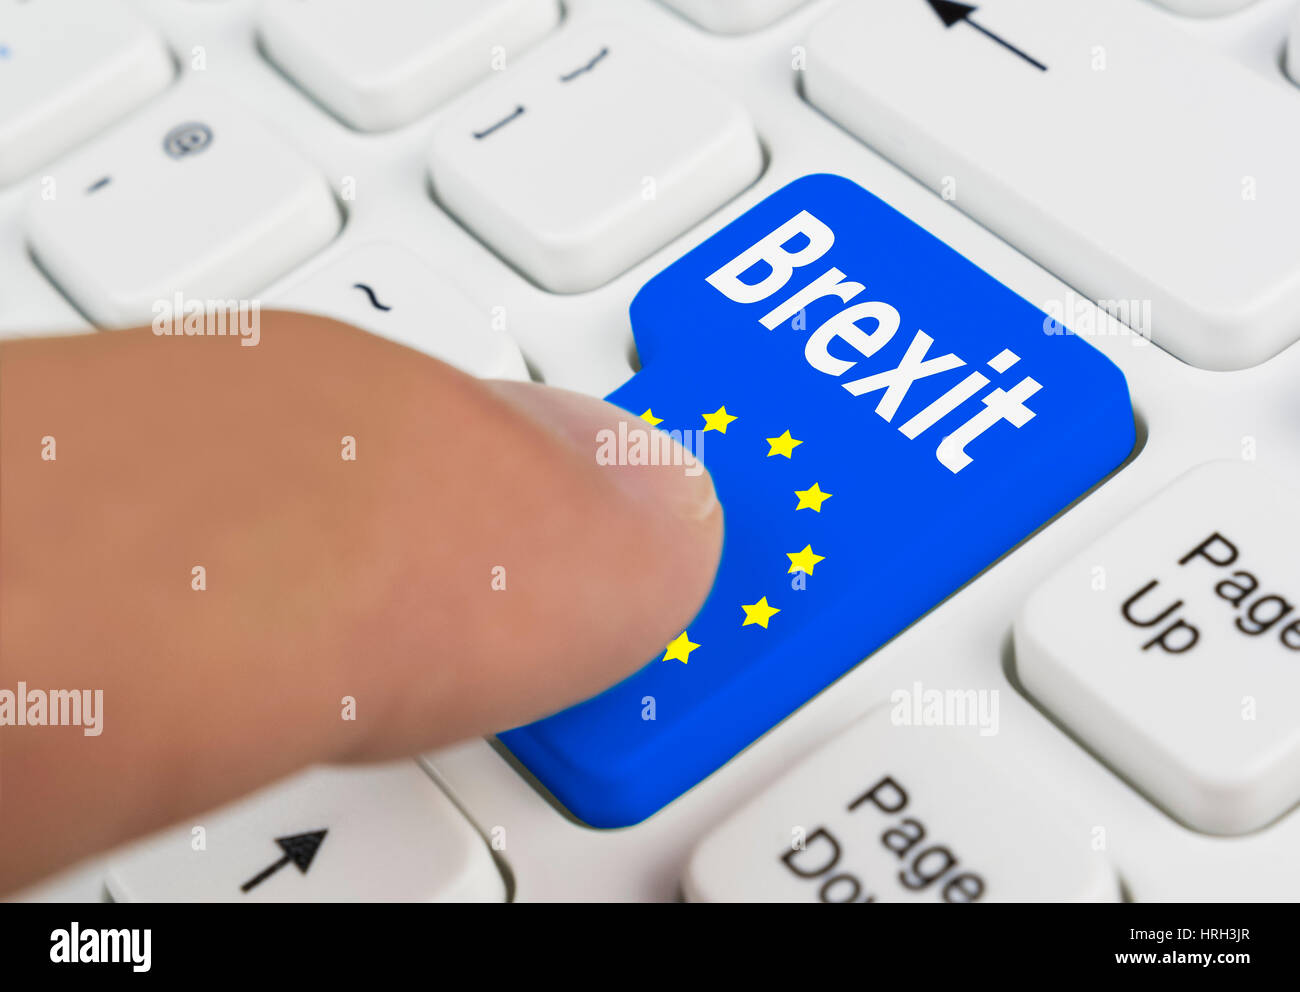 Brexit concept button to symbolise the UK leaving the EU. Brexit button. - Stock Image